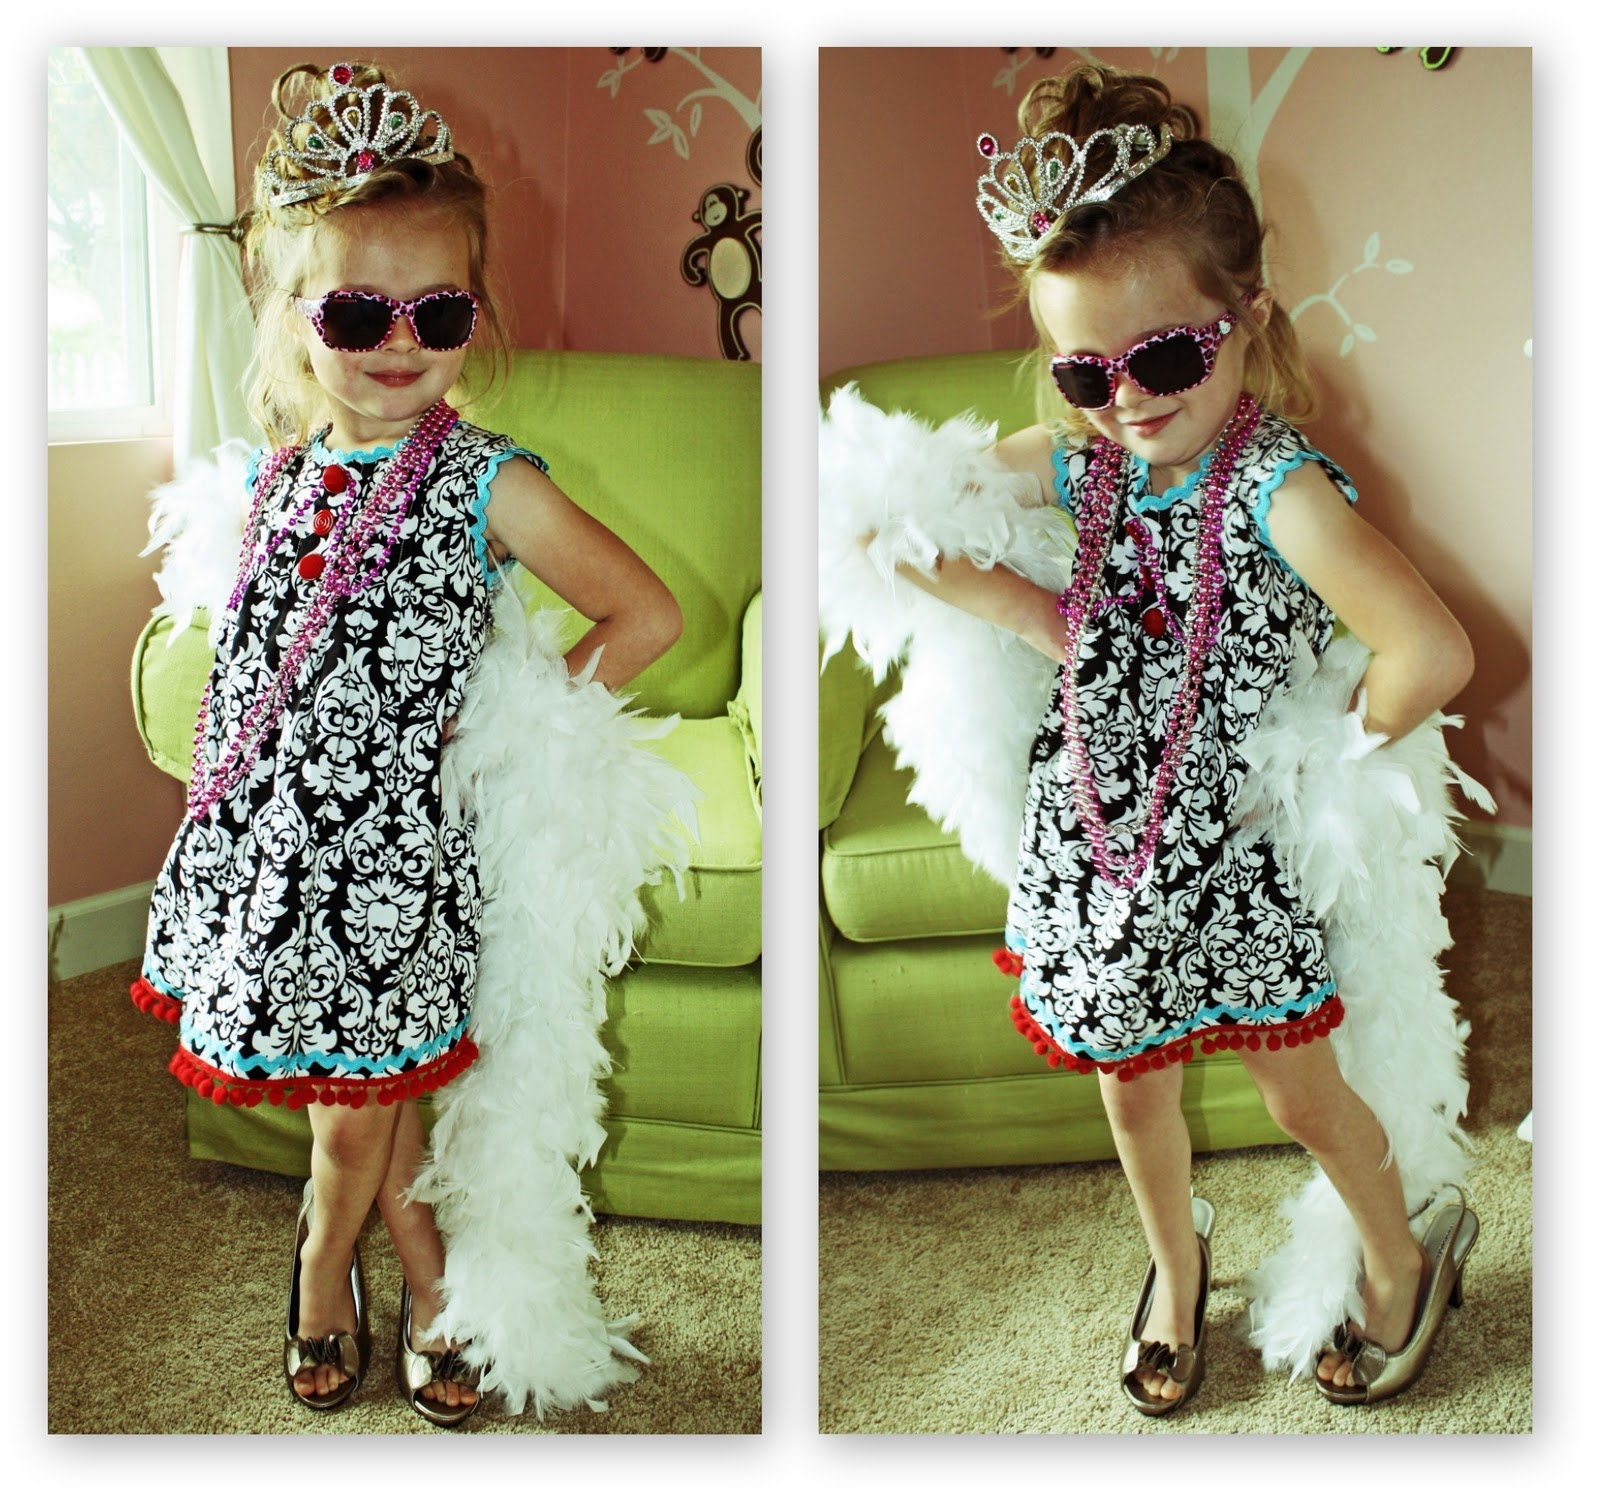 Diy fancy nancy dress icandy handmade decided to create a fancy nancy dress for her with a tutorial and giveaway for you solutioingenieria